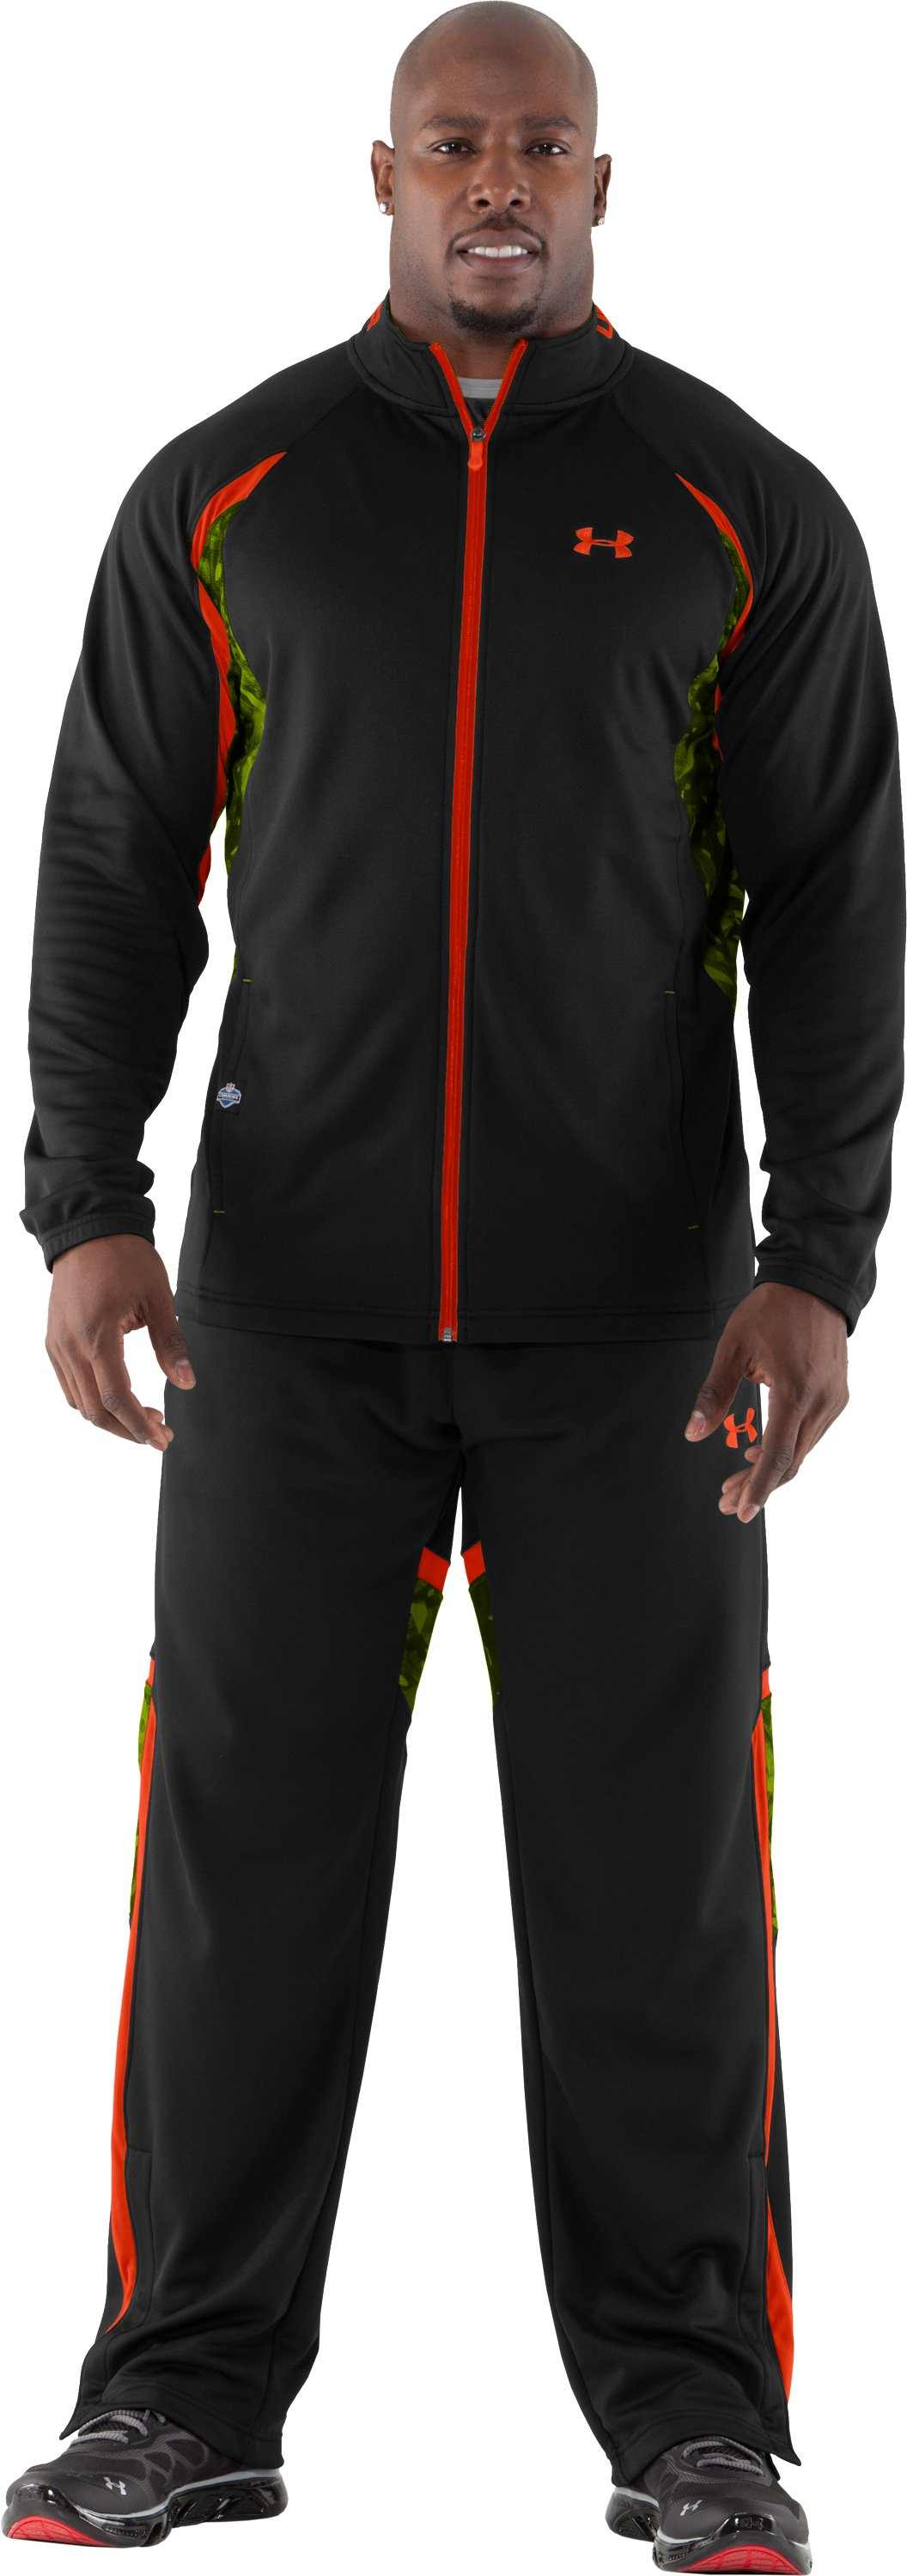 Men's NFL Combine Authentic Warm-Up Jacket, Black